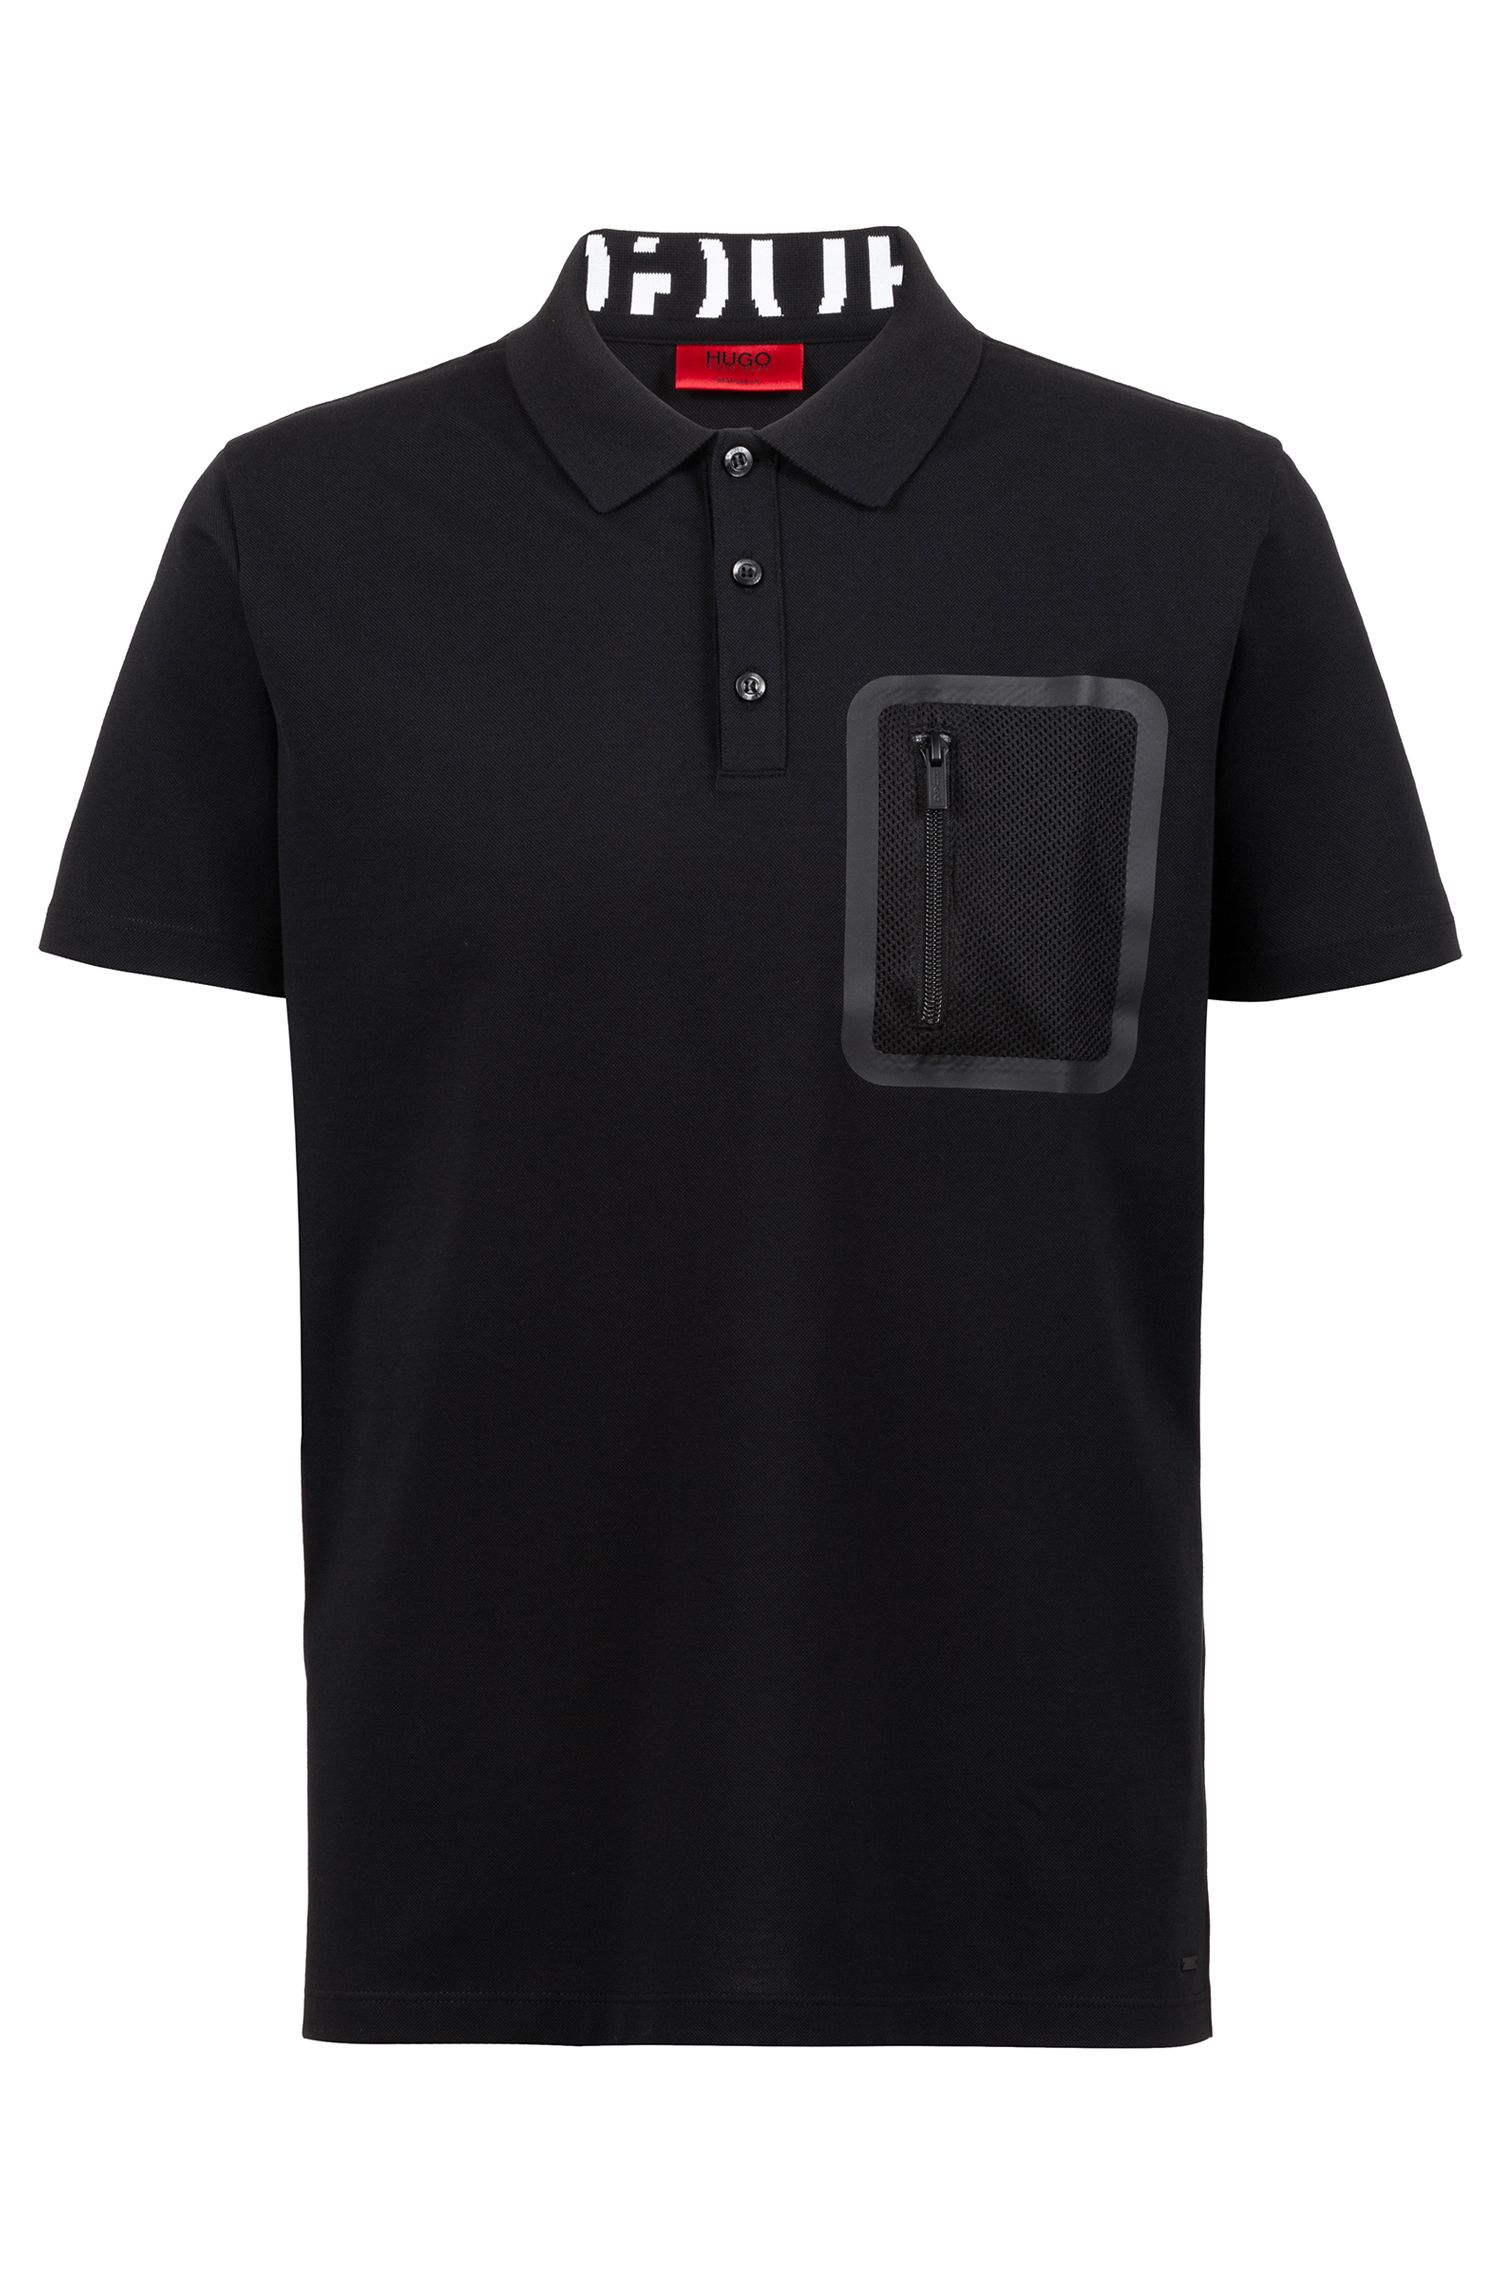 Knitted polo shirt with Permafit finishing and zippered pocket, Black